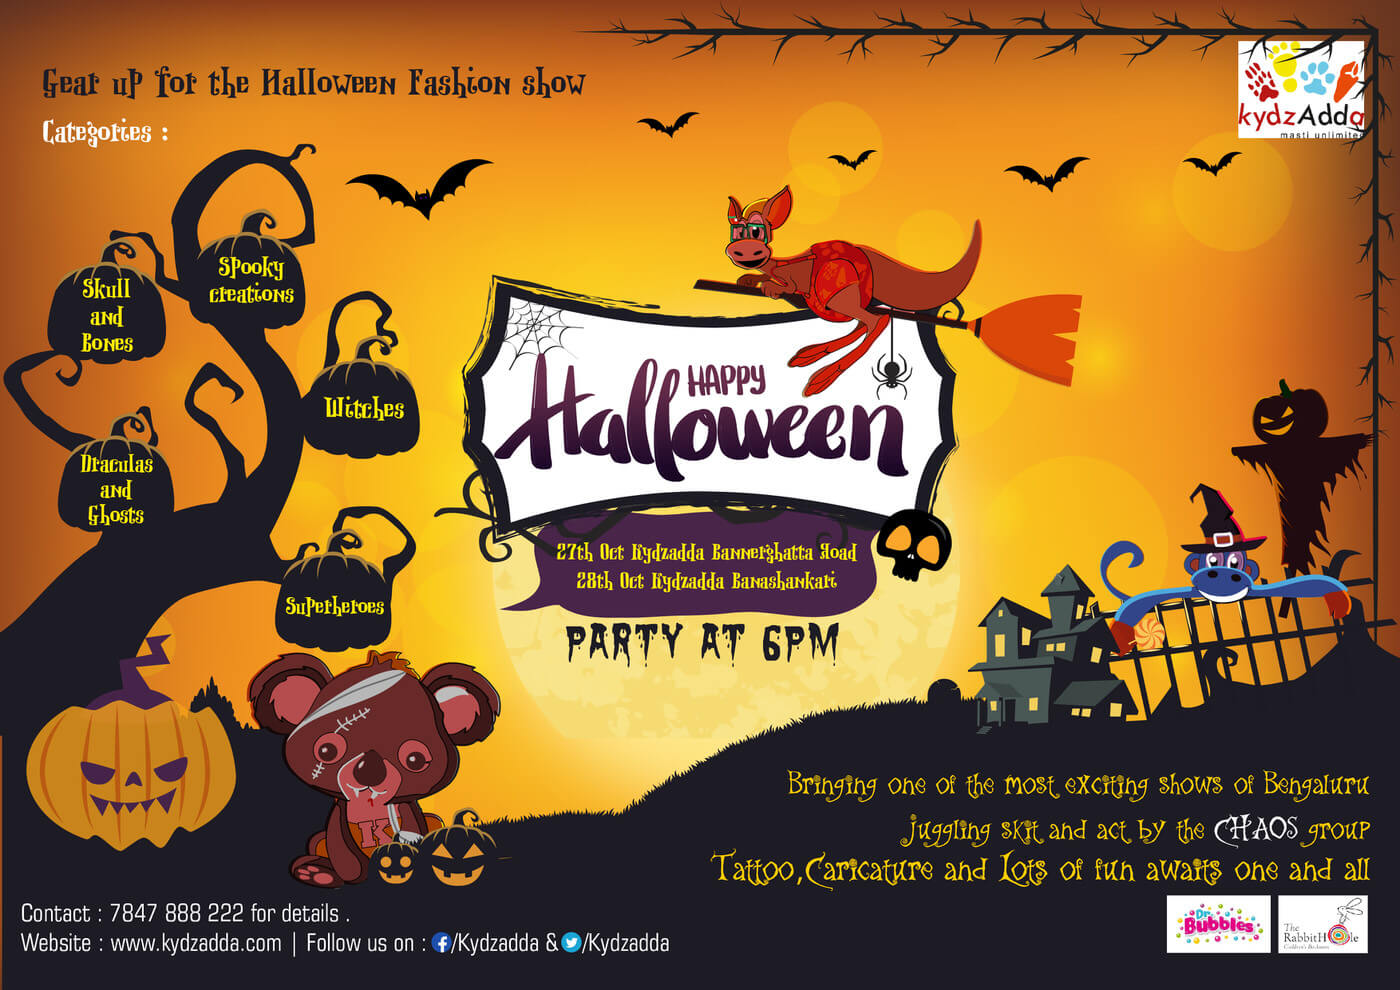 KydzAdda Halloween Party Cover Image